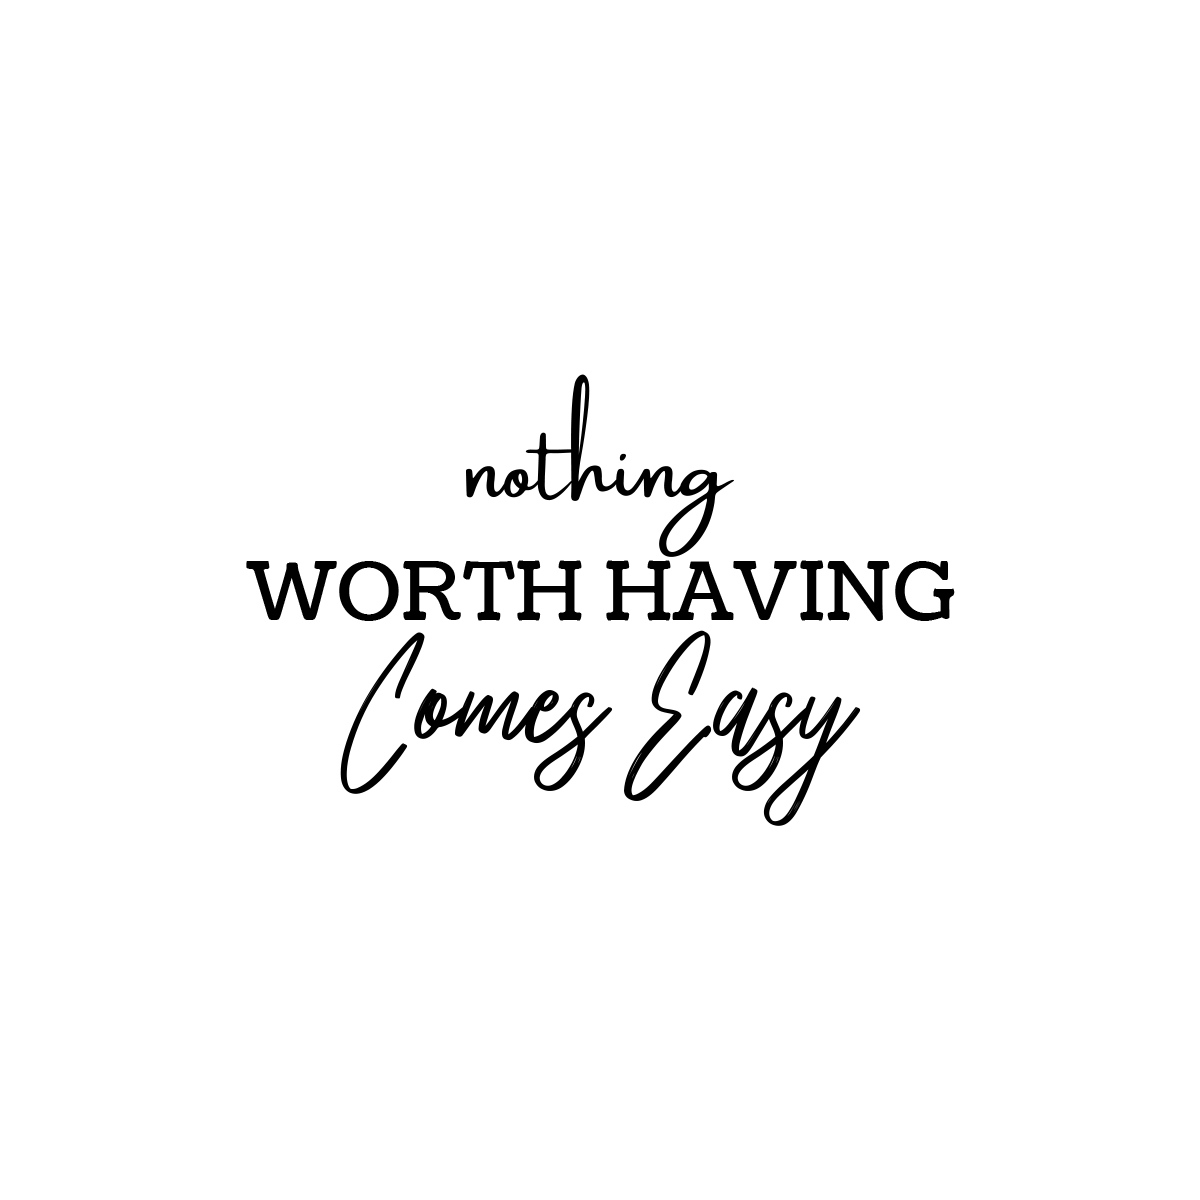 Nothing worth having comes easy.  #inspirational #inspirationalquotes #quote #quotes #motivation #inspiration #motivationalquotes #quotestoliveby #quotesaboutlife #quotestoinspire #quotestags #quotesforlife #positivequotes #inspiringquotes #quoteoftheday #quotesoftheday https://t.co/NNa2lTPQfQ